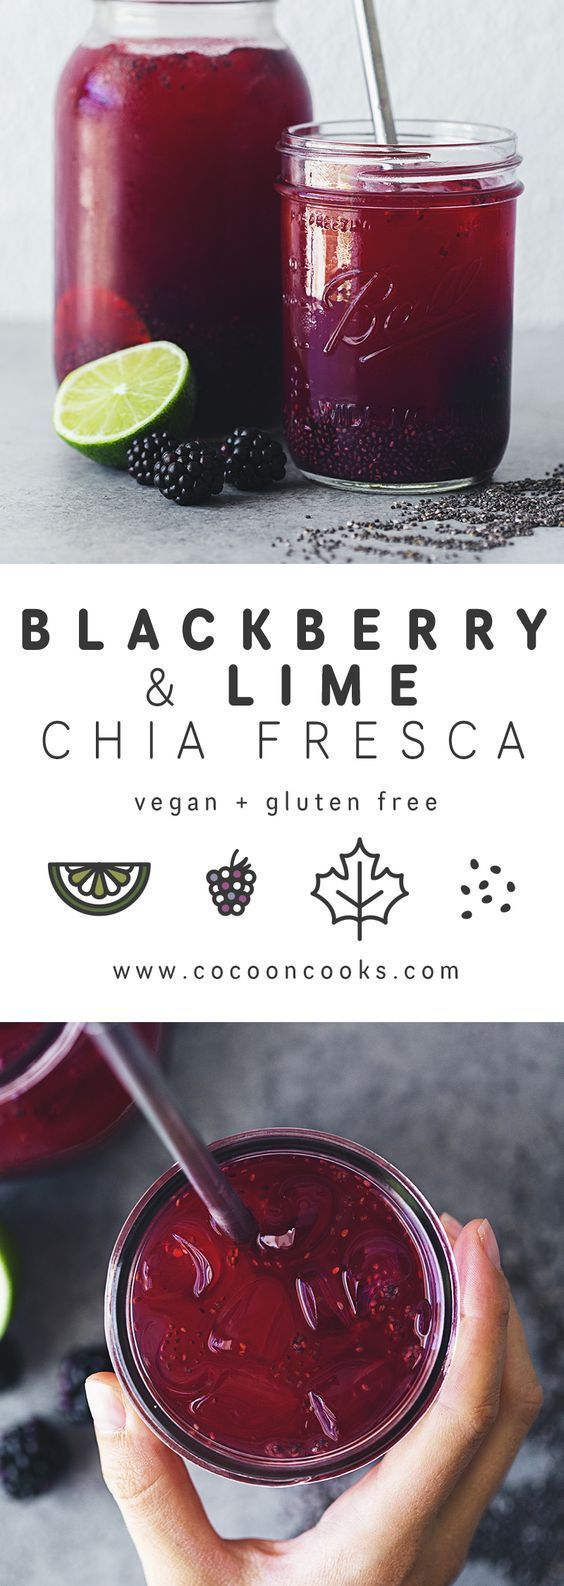 Quench your thirst with this Blackberry & Lime Chia Fresca! Delicious, refreshing and healthy. #vegan #recipe